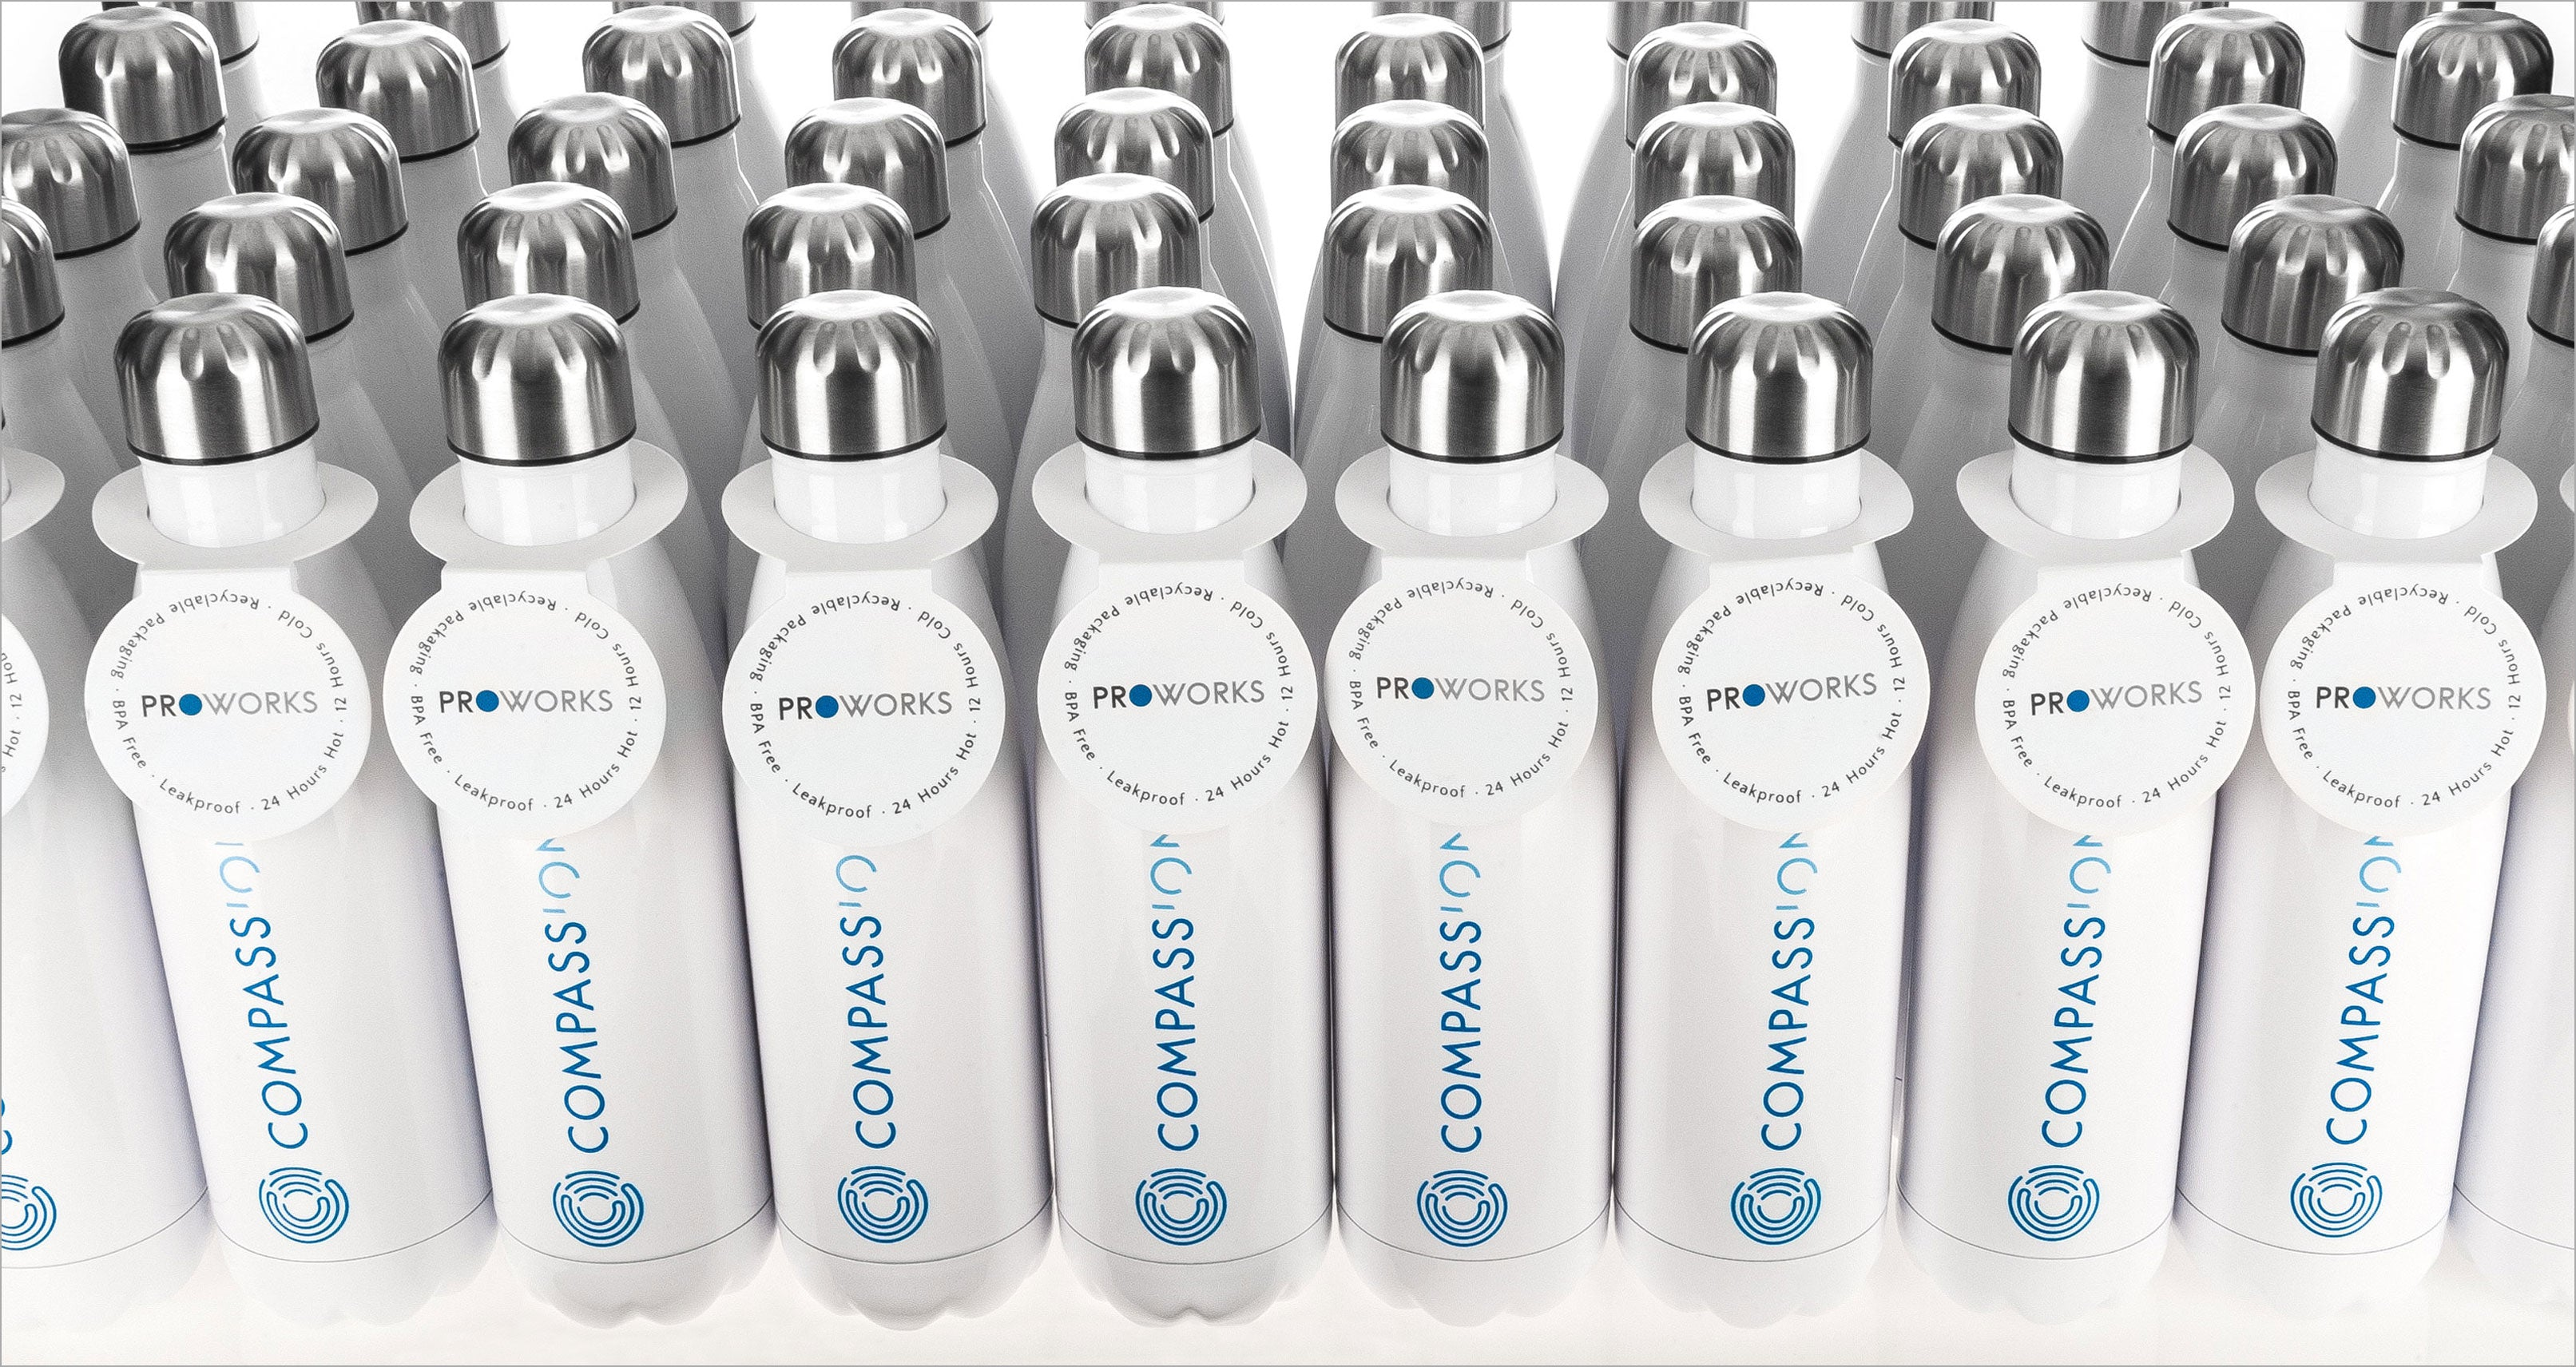 Proworks Co-Brand Water Bottles